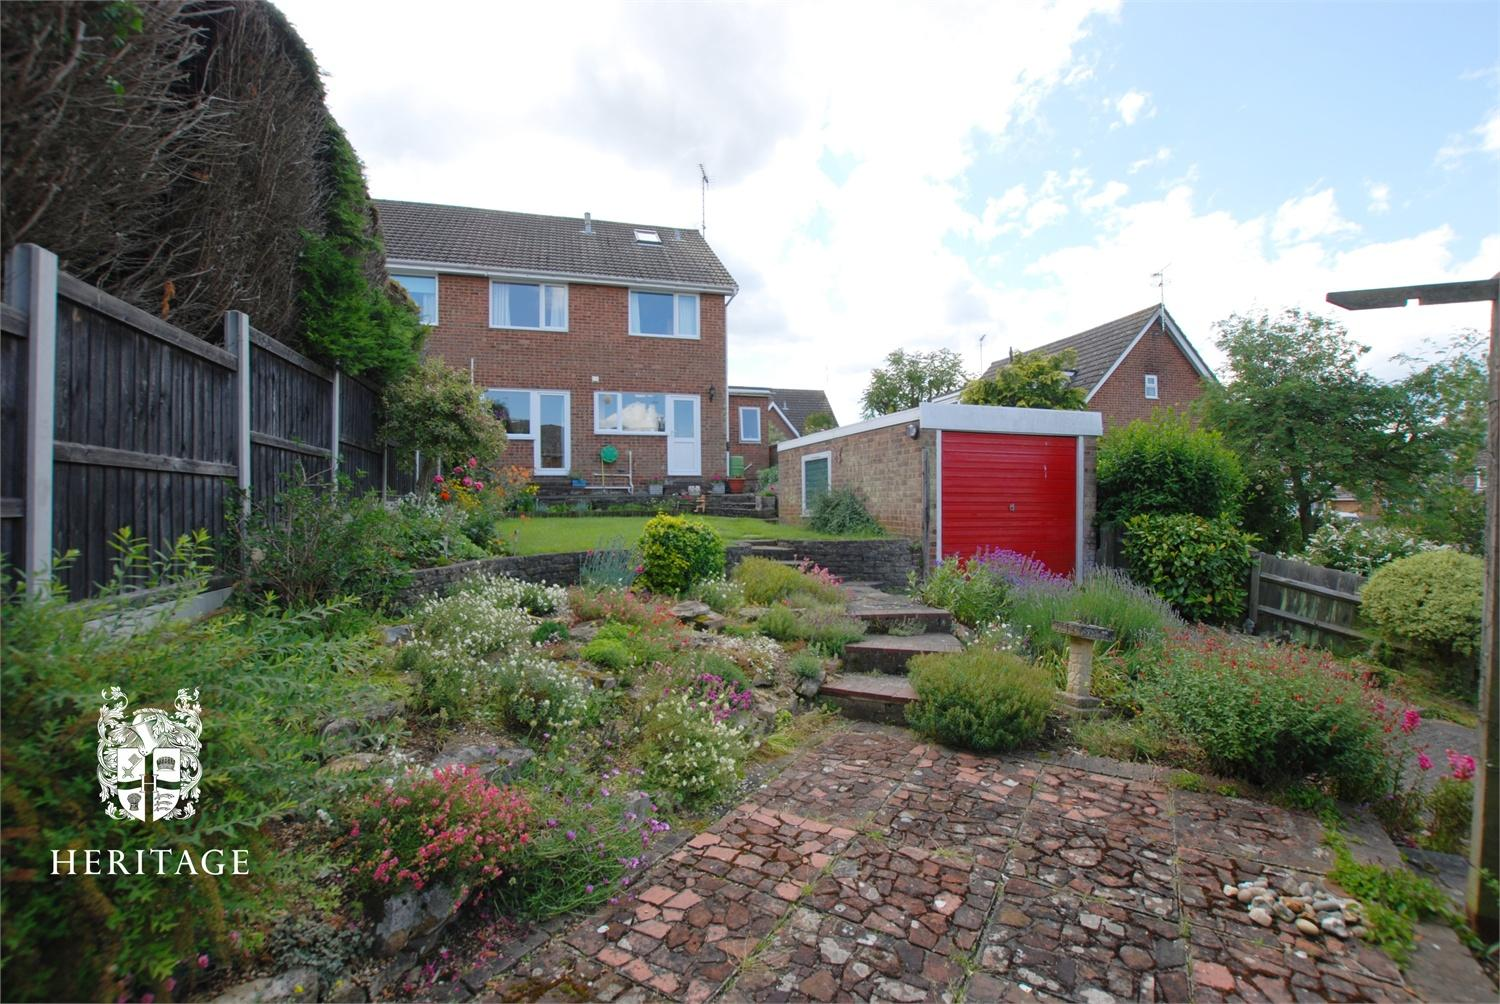 4 Bedroom Semi Detached House For Sale In Essex